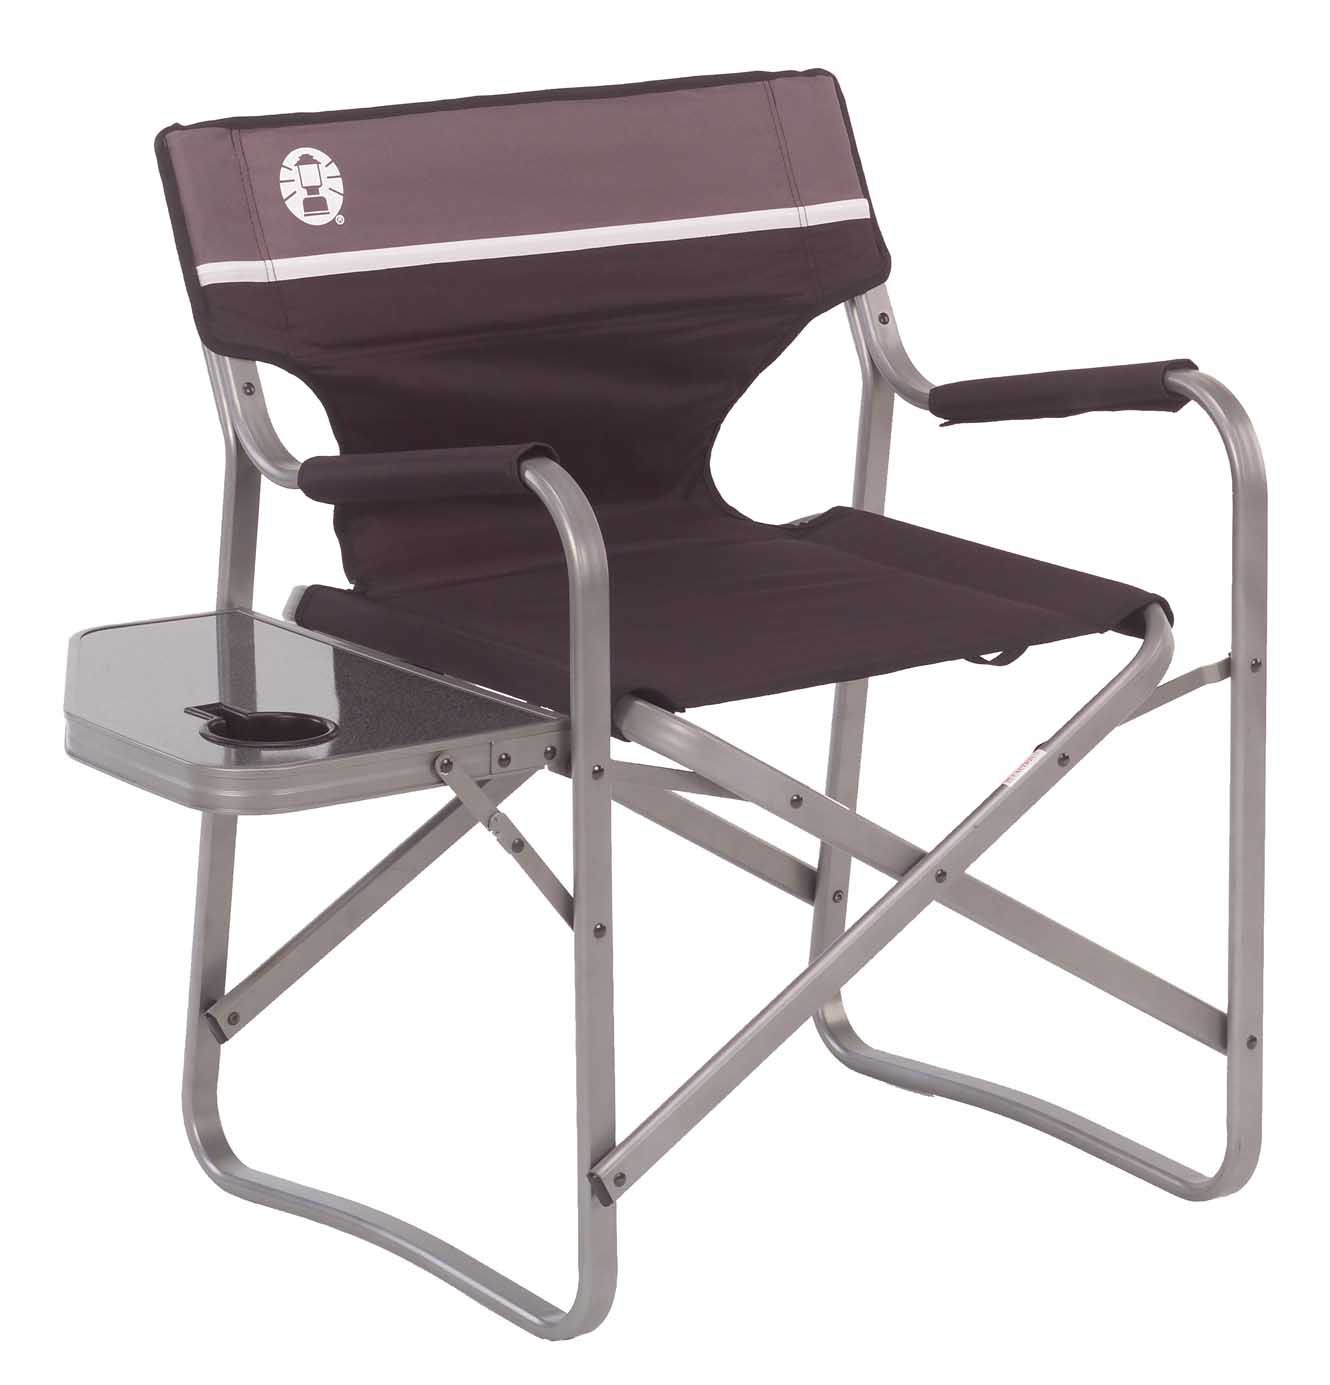 Camping  Folding Chairs  Coleman